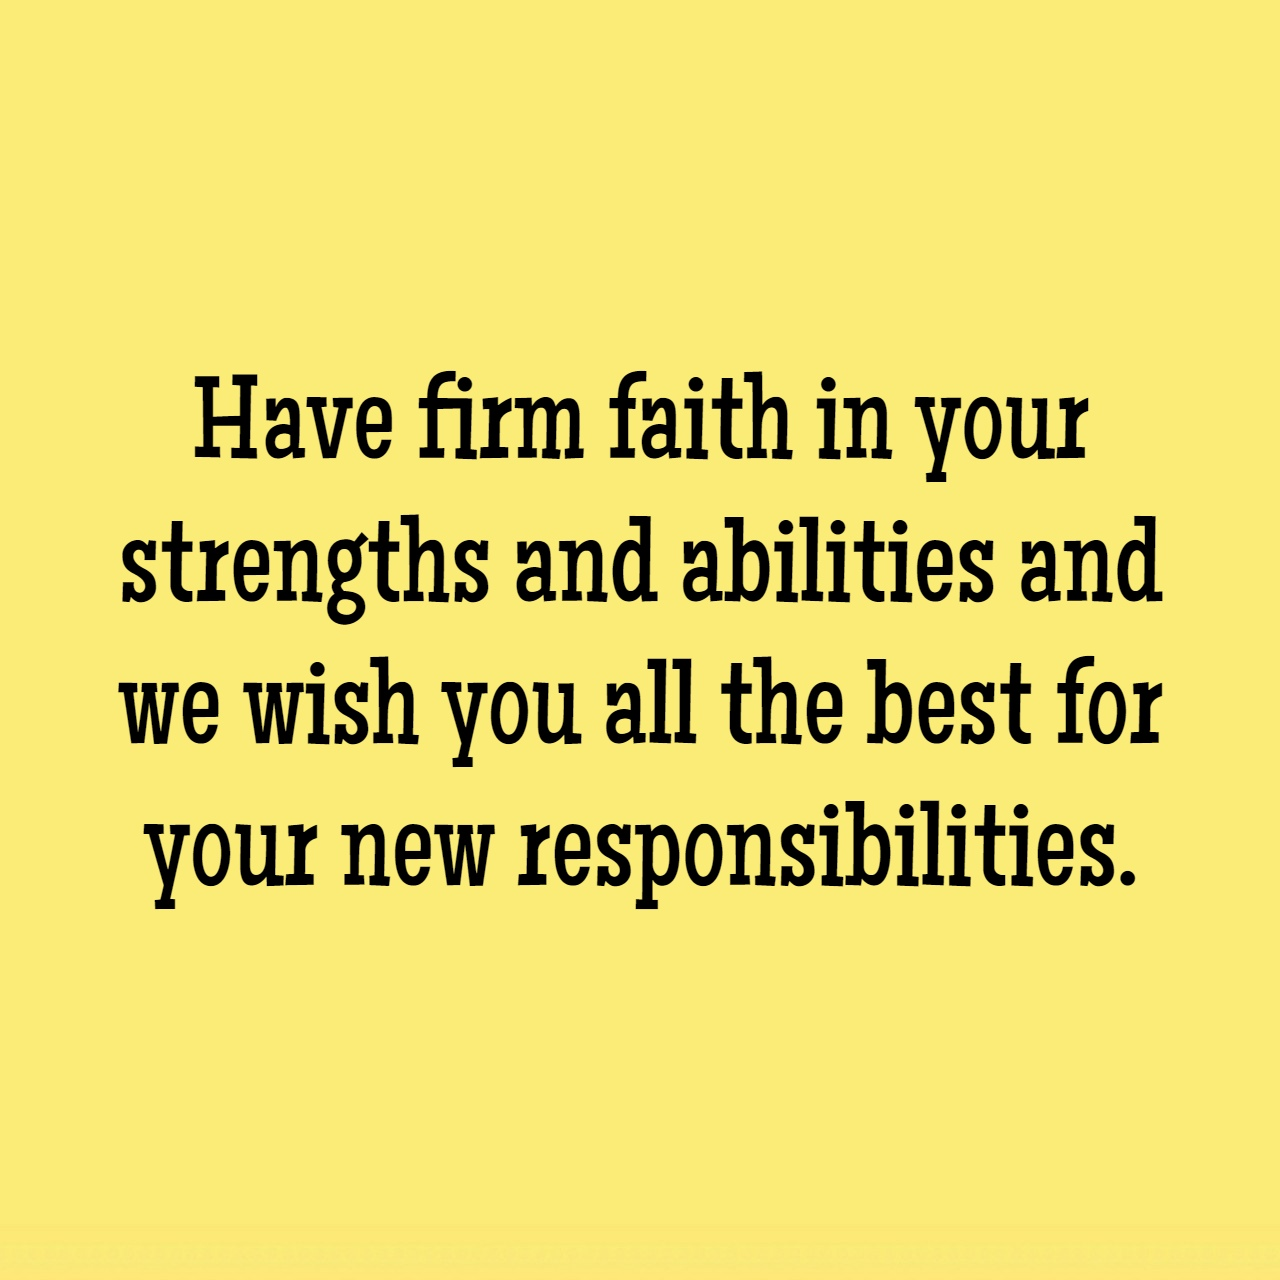 have firm faith in your strengths and abilities and we wish you all the best for your new responsibilities